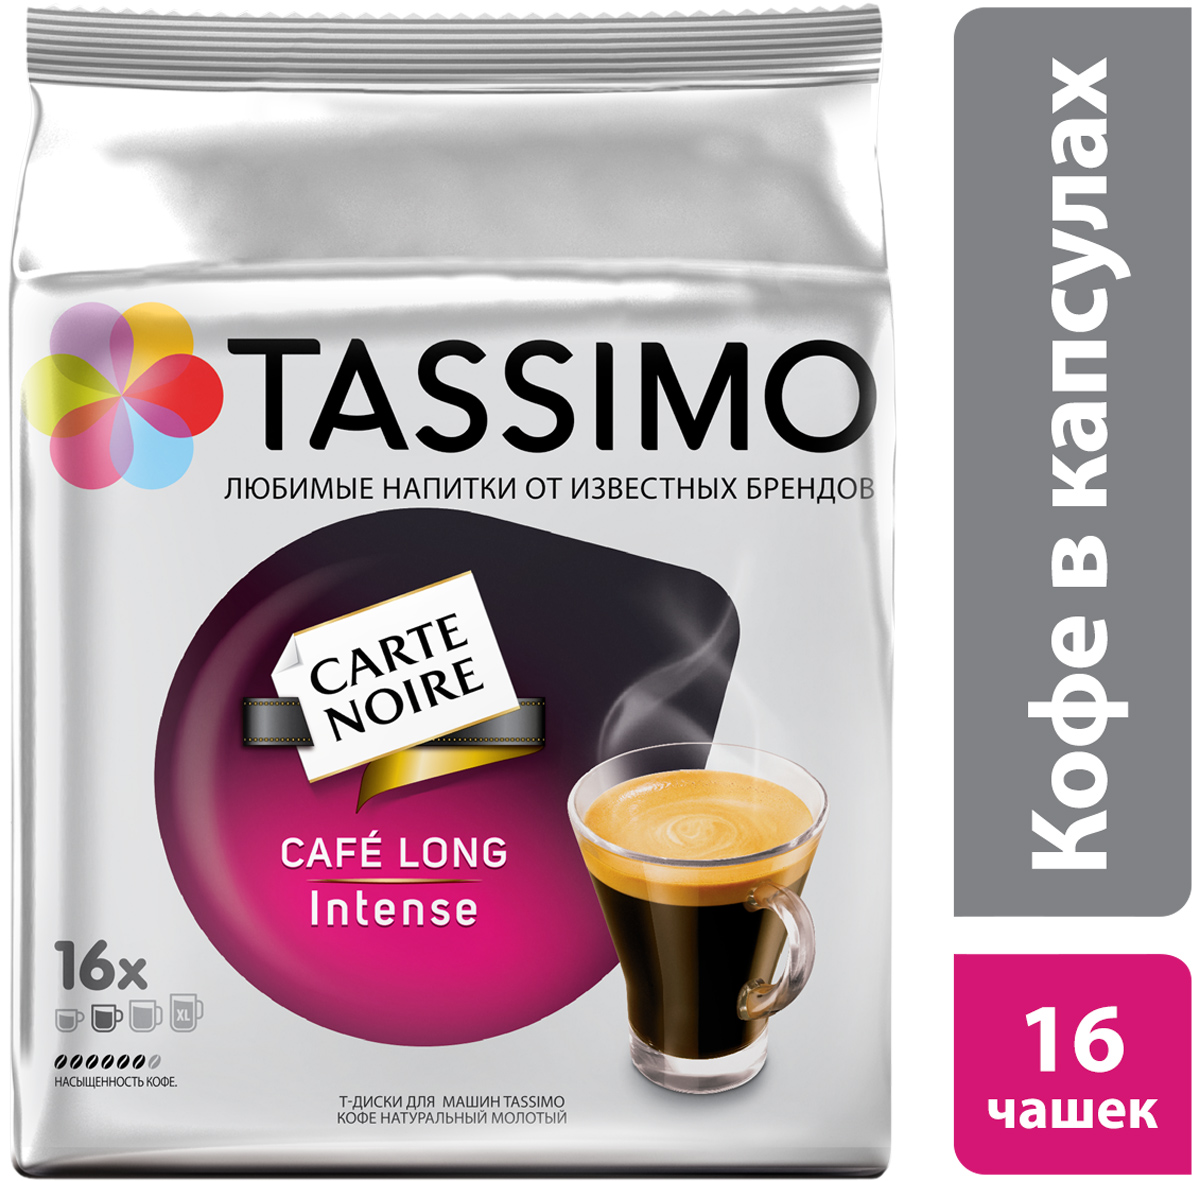 Tassimo Carte Noire Cafe Long Intense кофе в капсулах, 16 шт капсулы tassimo latte macchiato caramel